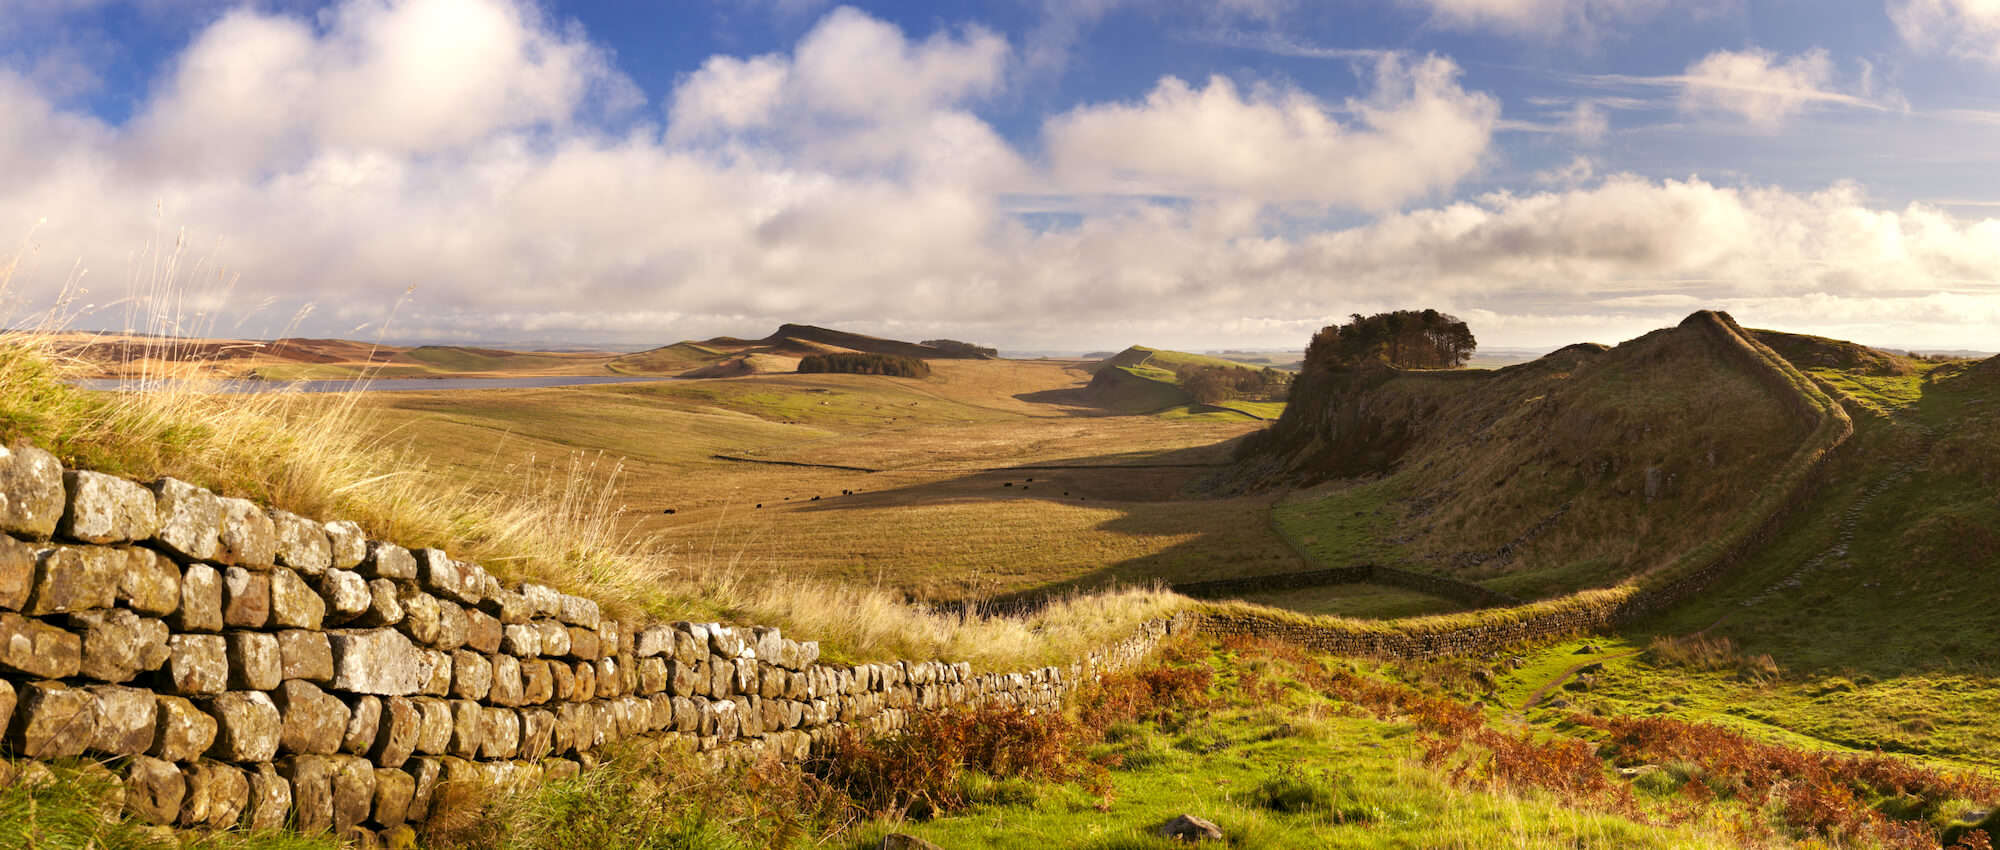 Hadrian's Wall Path Classic Plus Walking Holiday